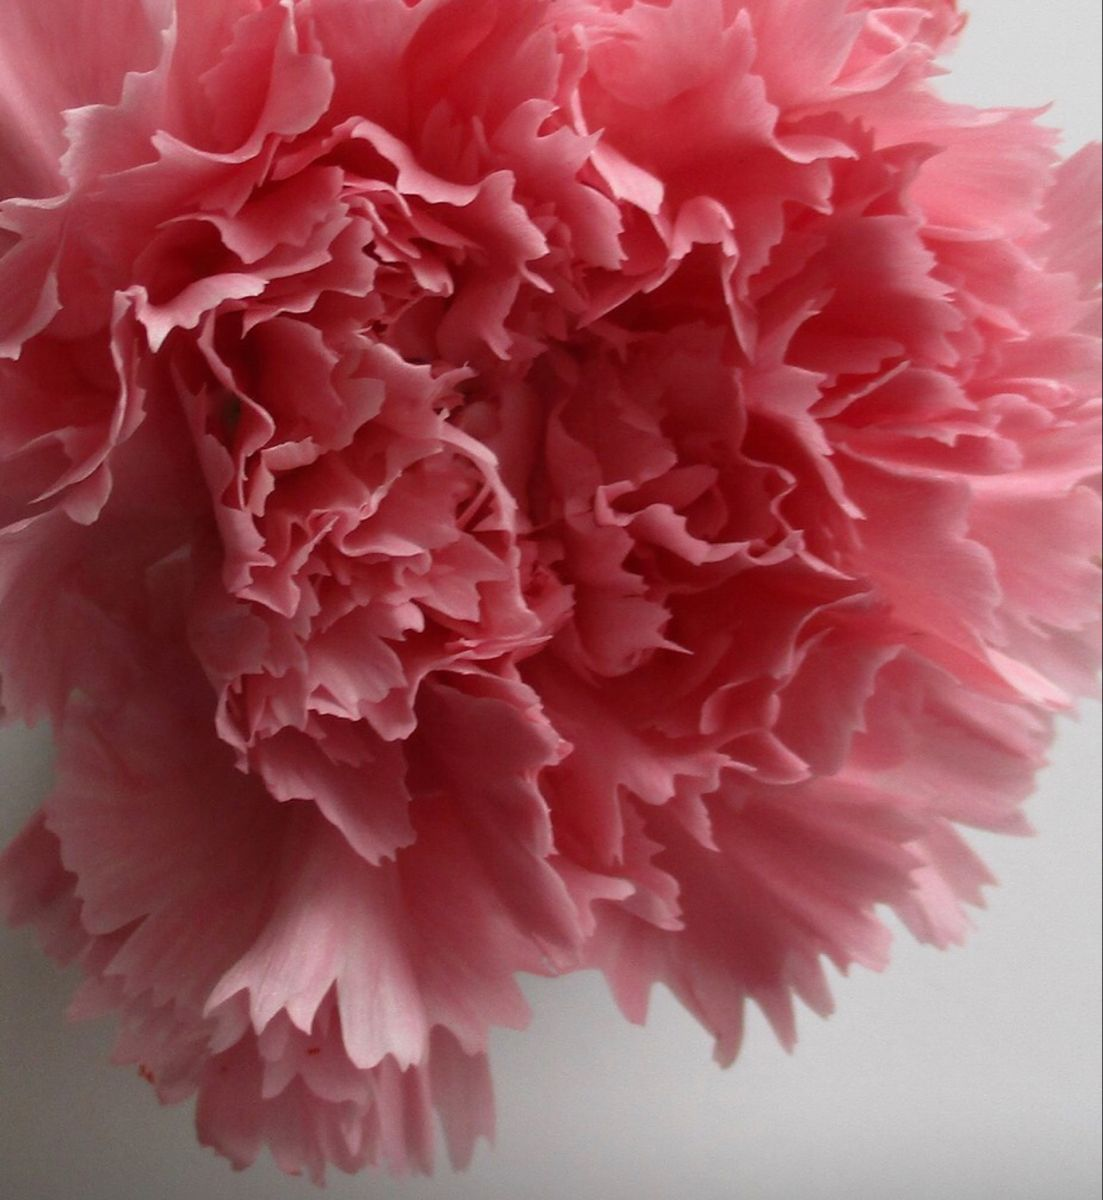 Pink Carnation In 2020 Carnation Flower Bulk Flowers Online Pink Carnations